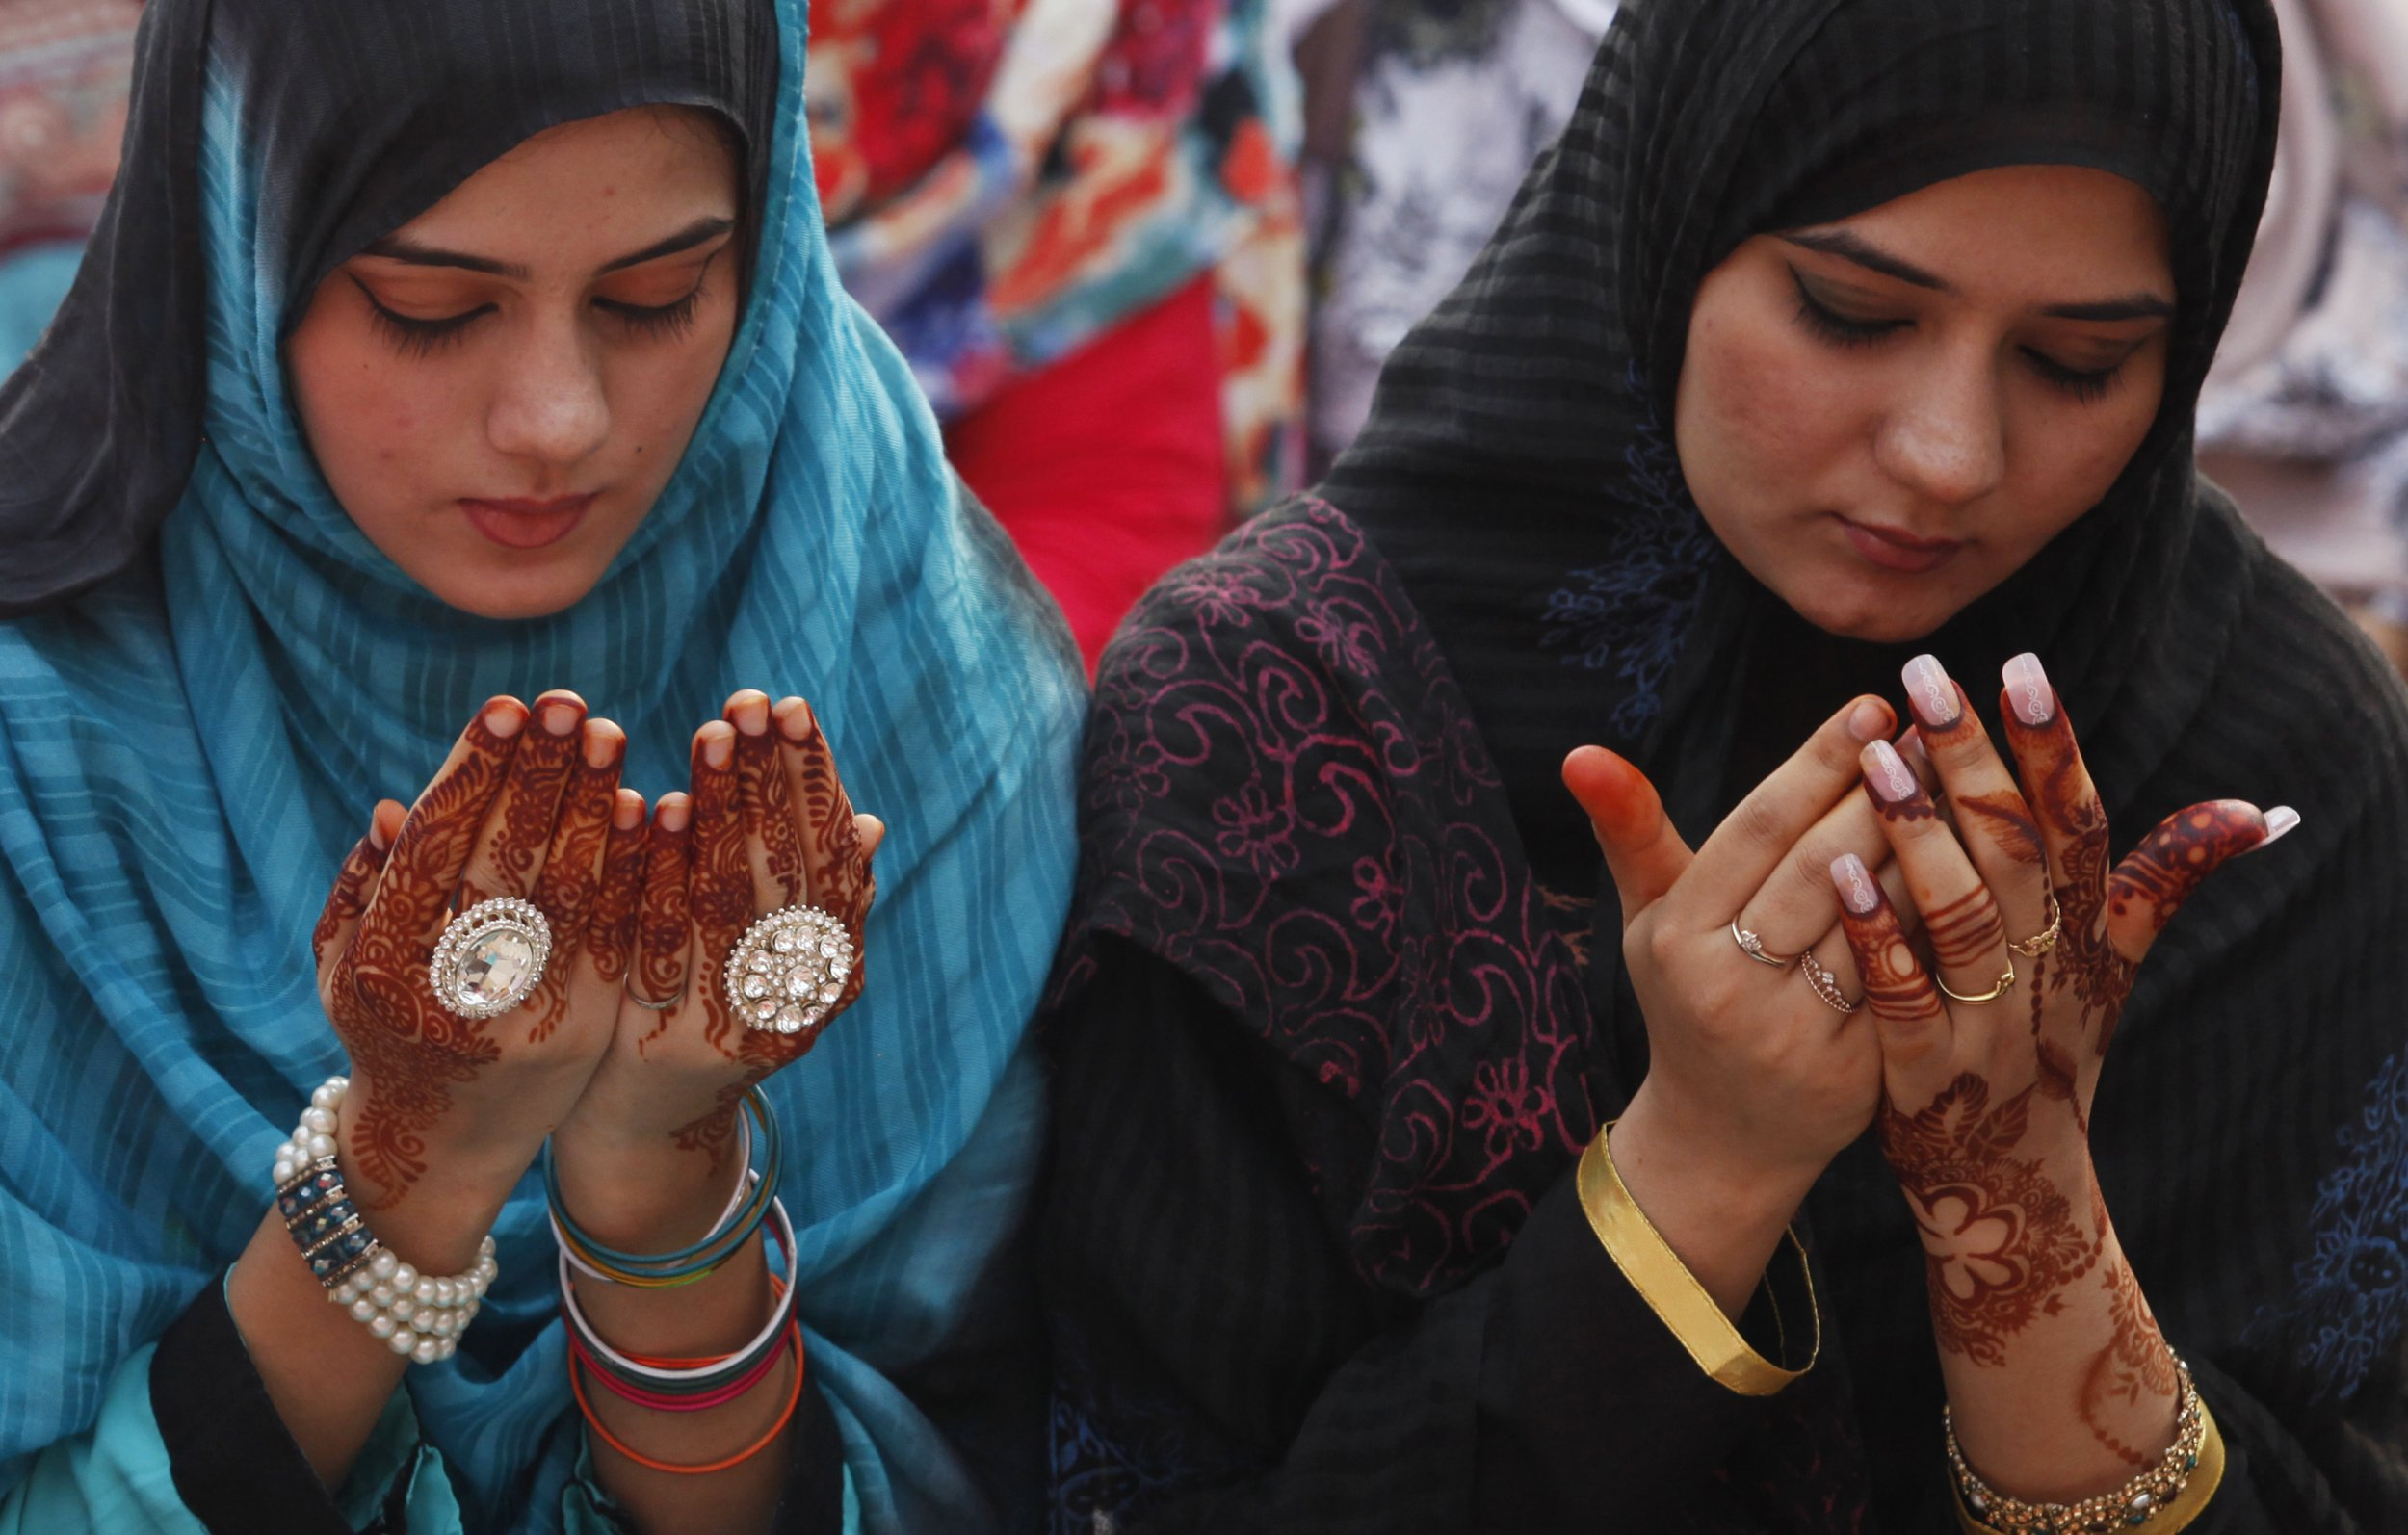 Muslim women during Eid al-Adha